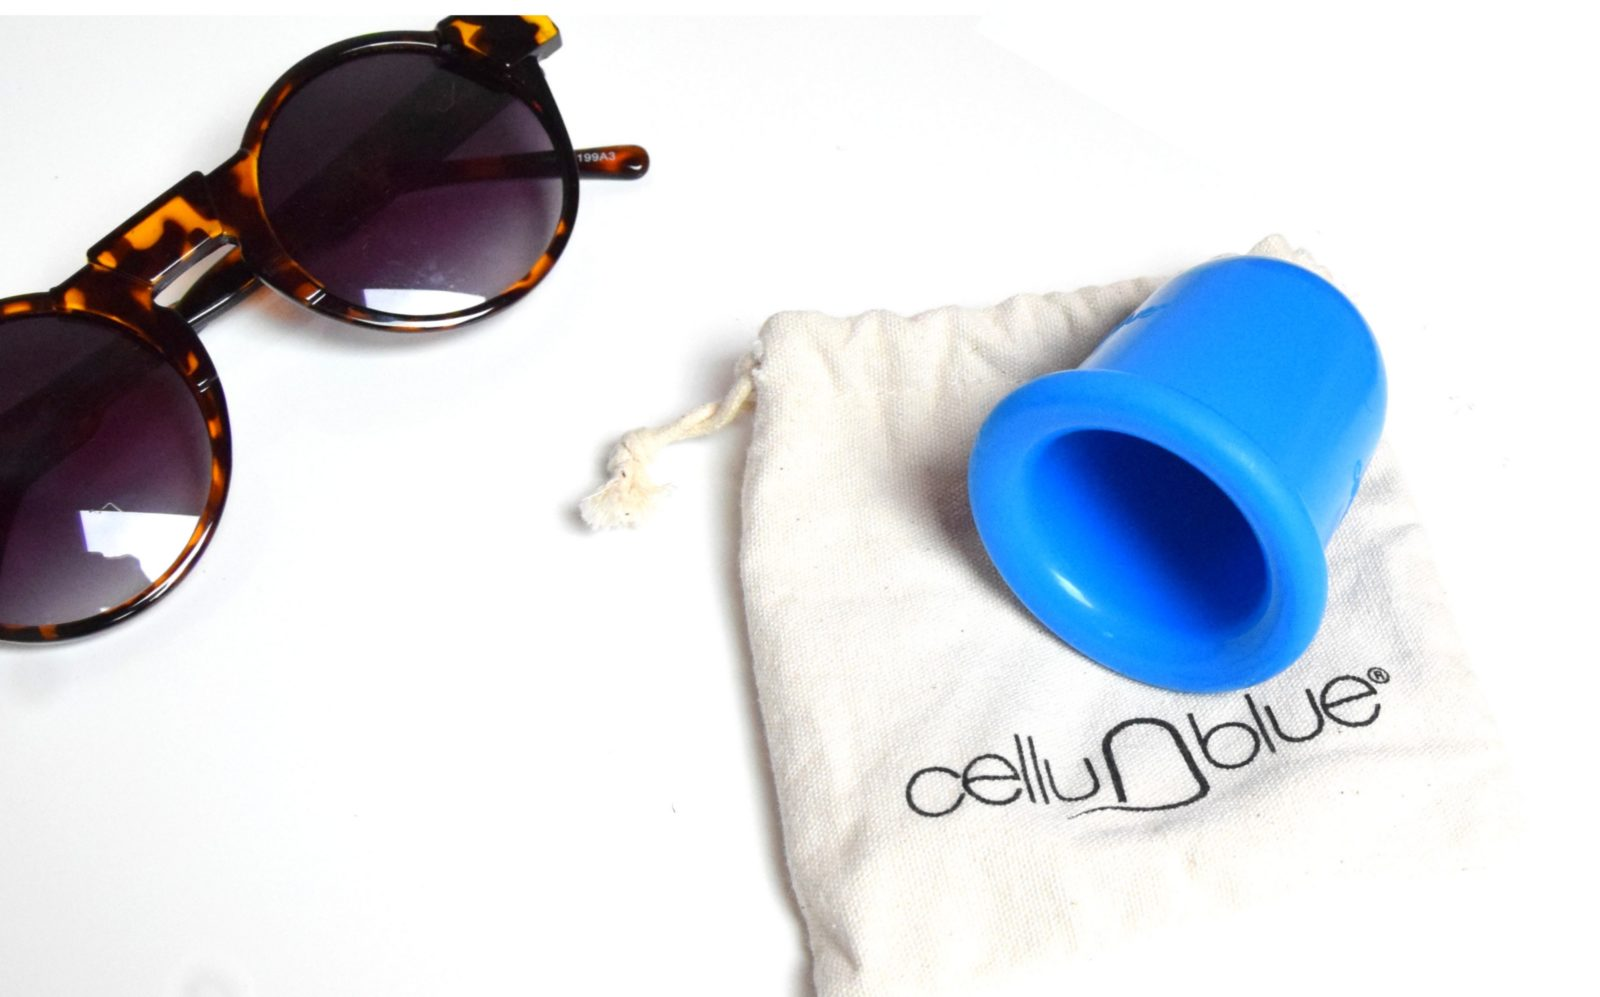 Cellulite cellublue anti-cellulite ventouse